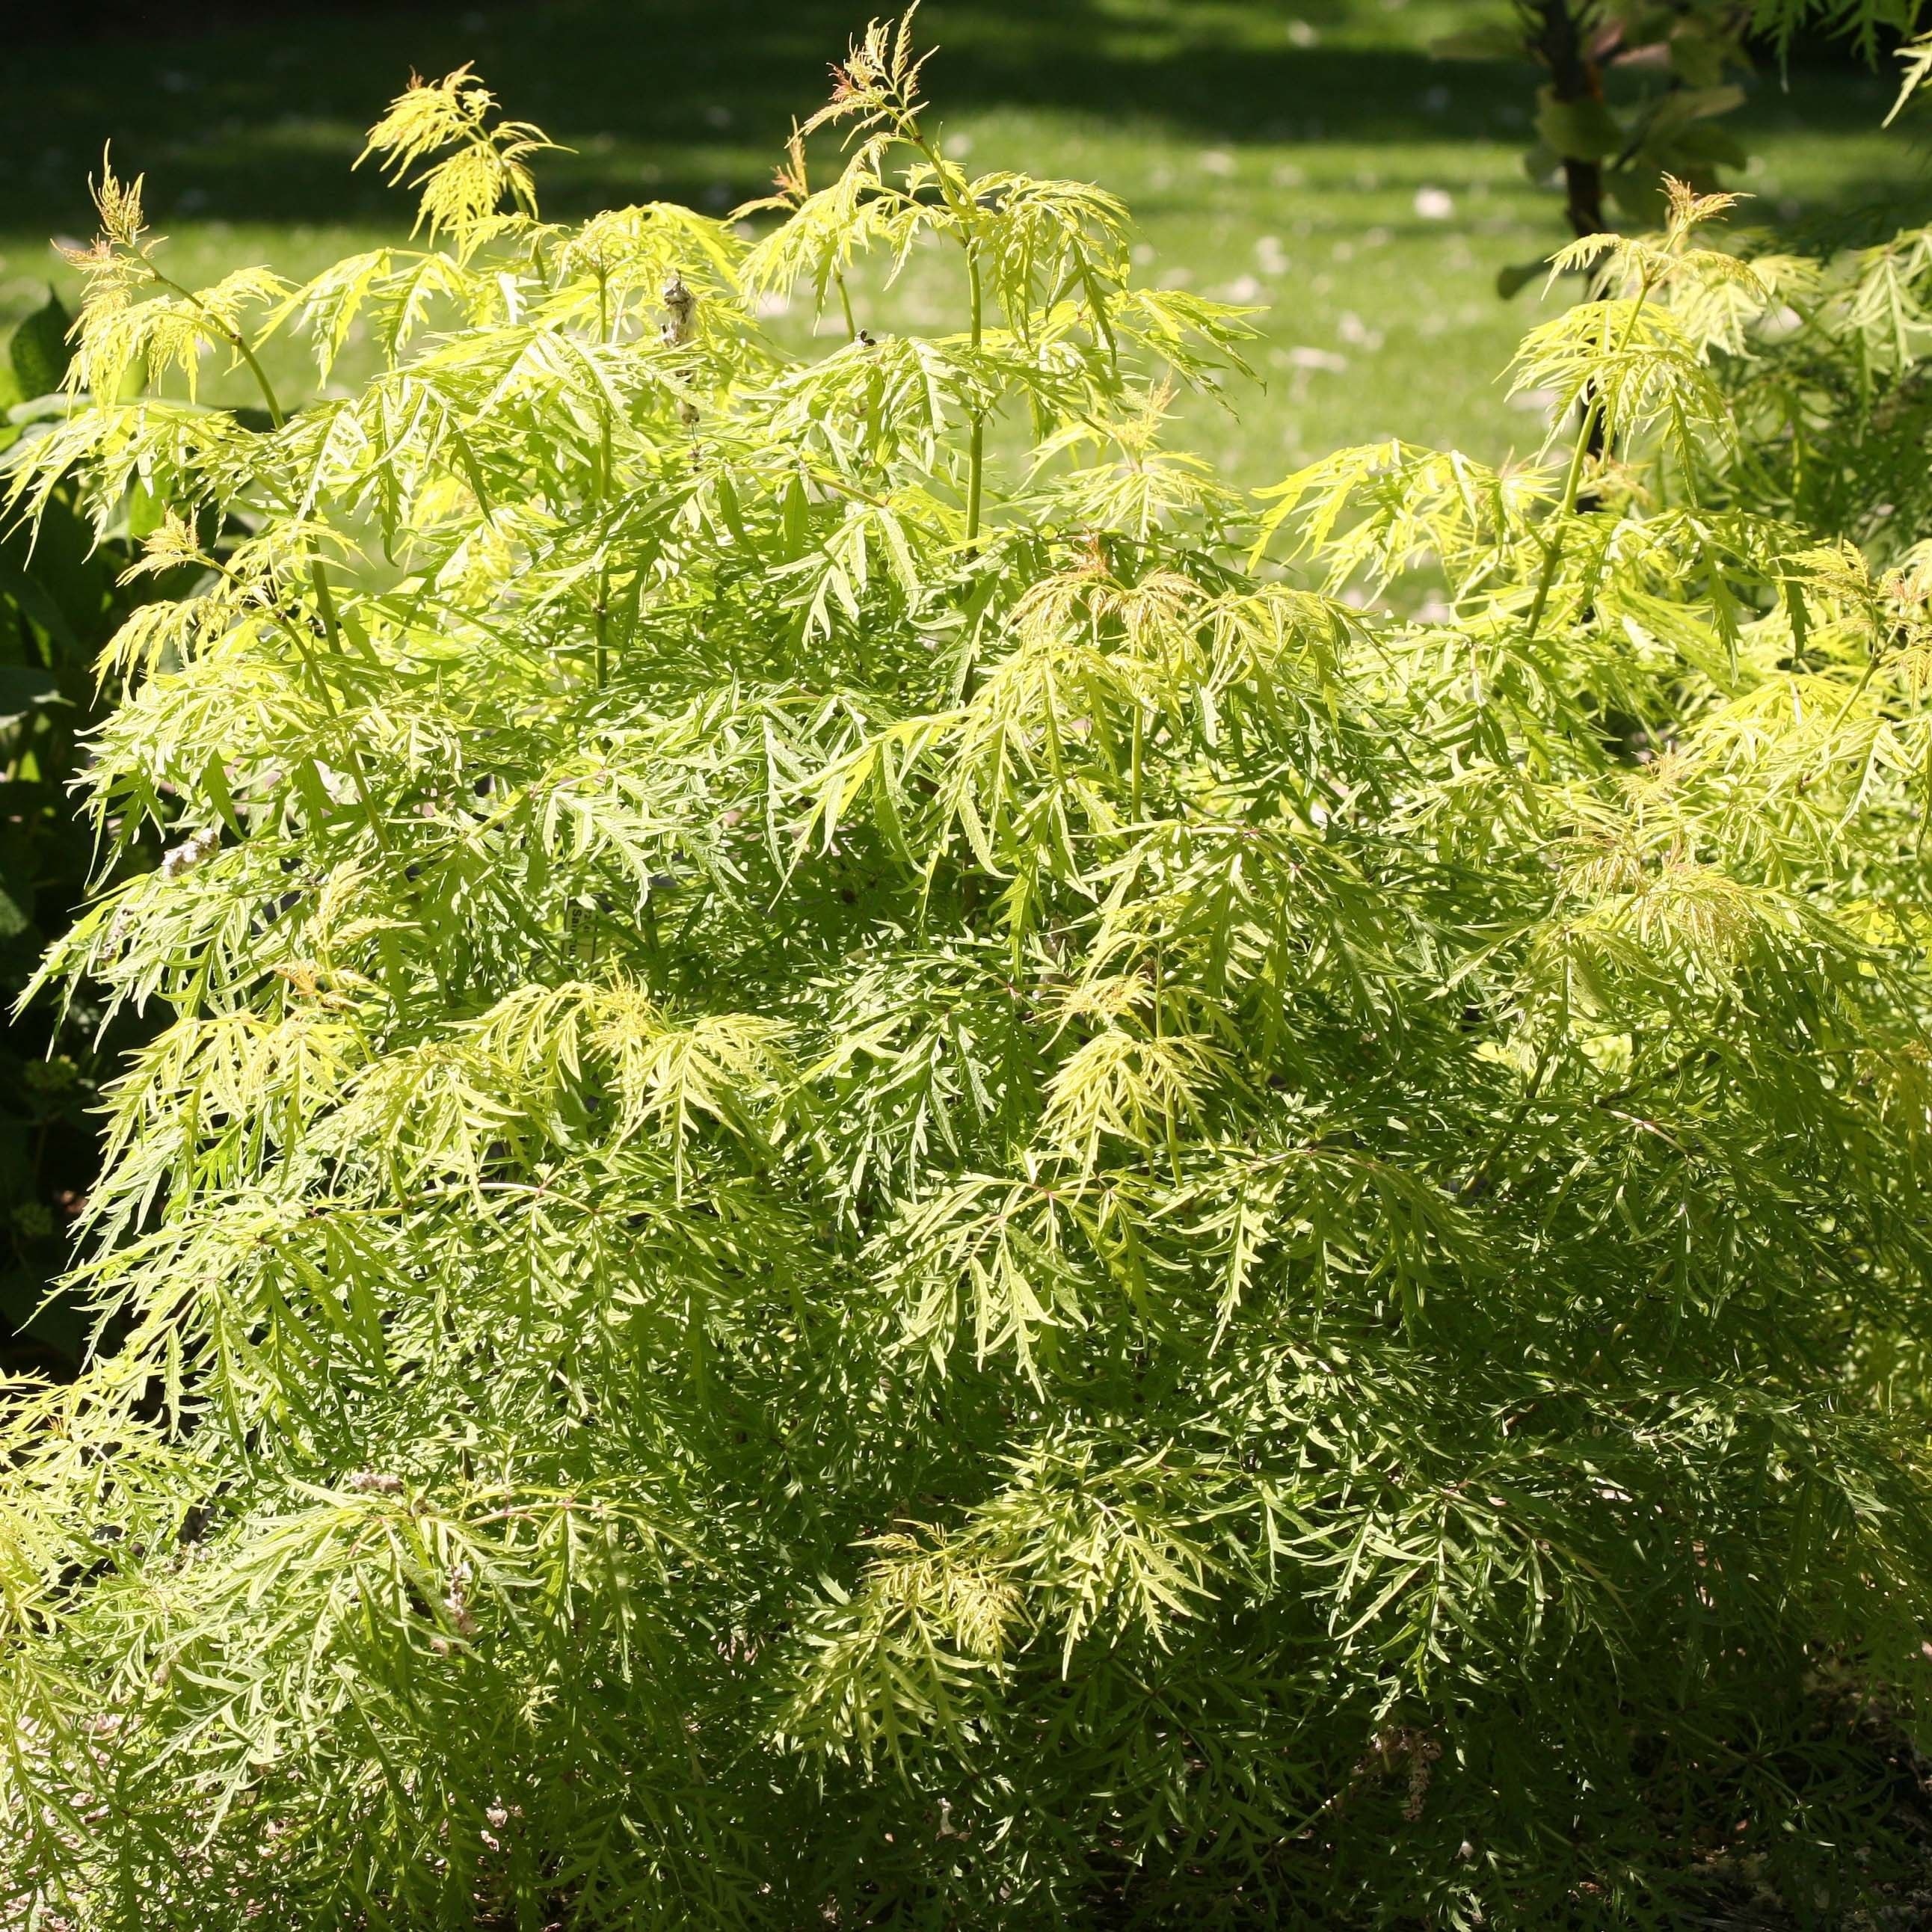 sambucus racemosa lemony lace sureau grappes feuillage citron. Black Bedroom Furniture Sets. Home Design Ideas